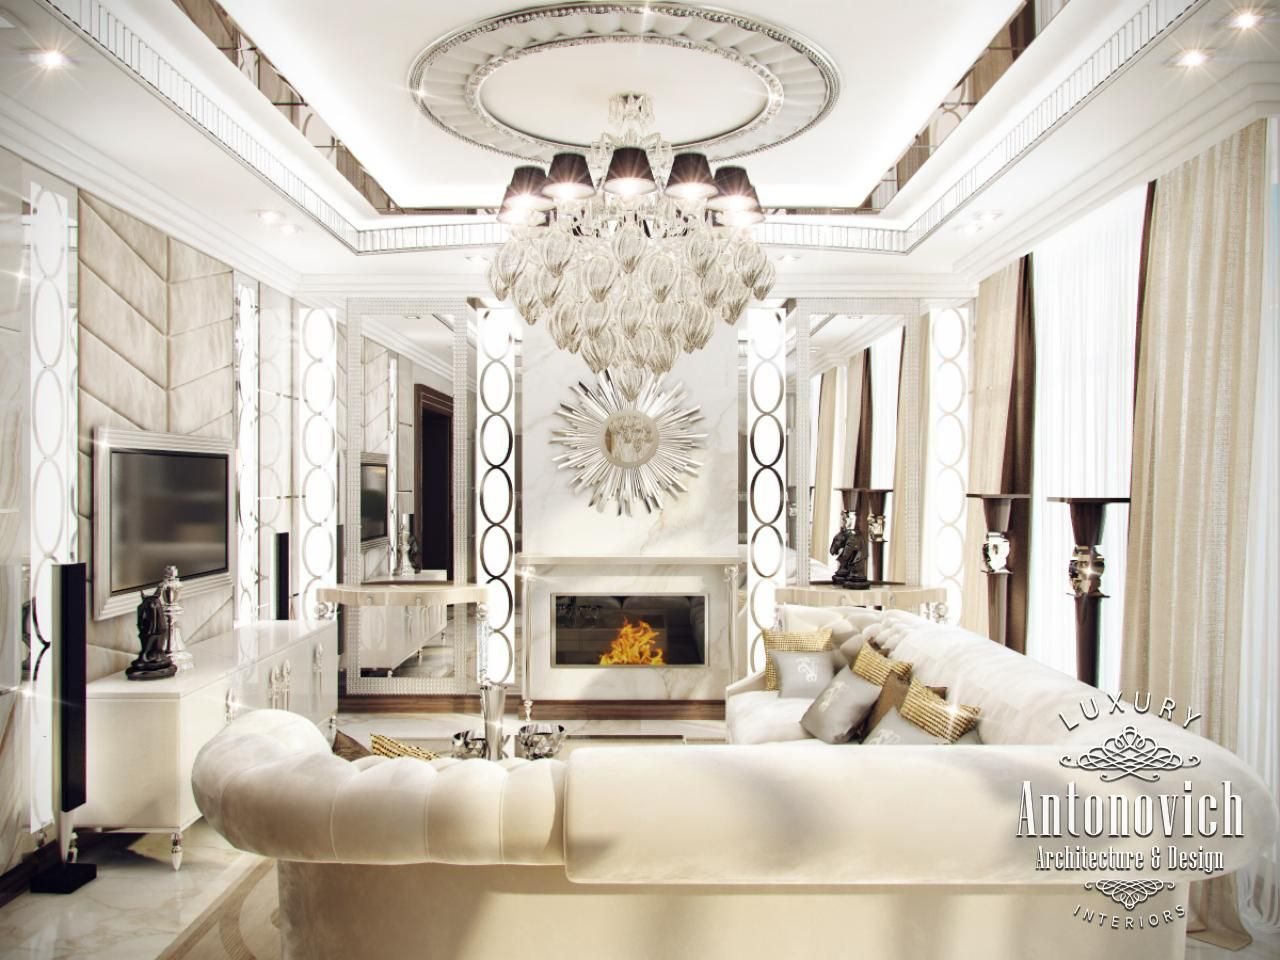 Villa interior design in dubai elegant villa in abu dhabi for Villa interior design dubai